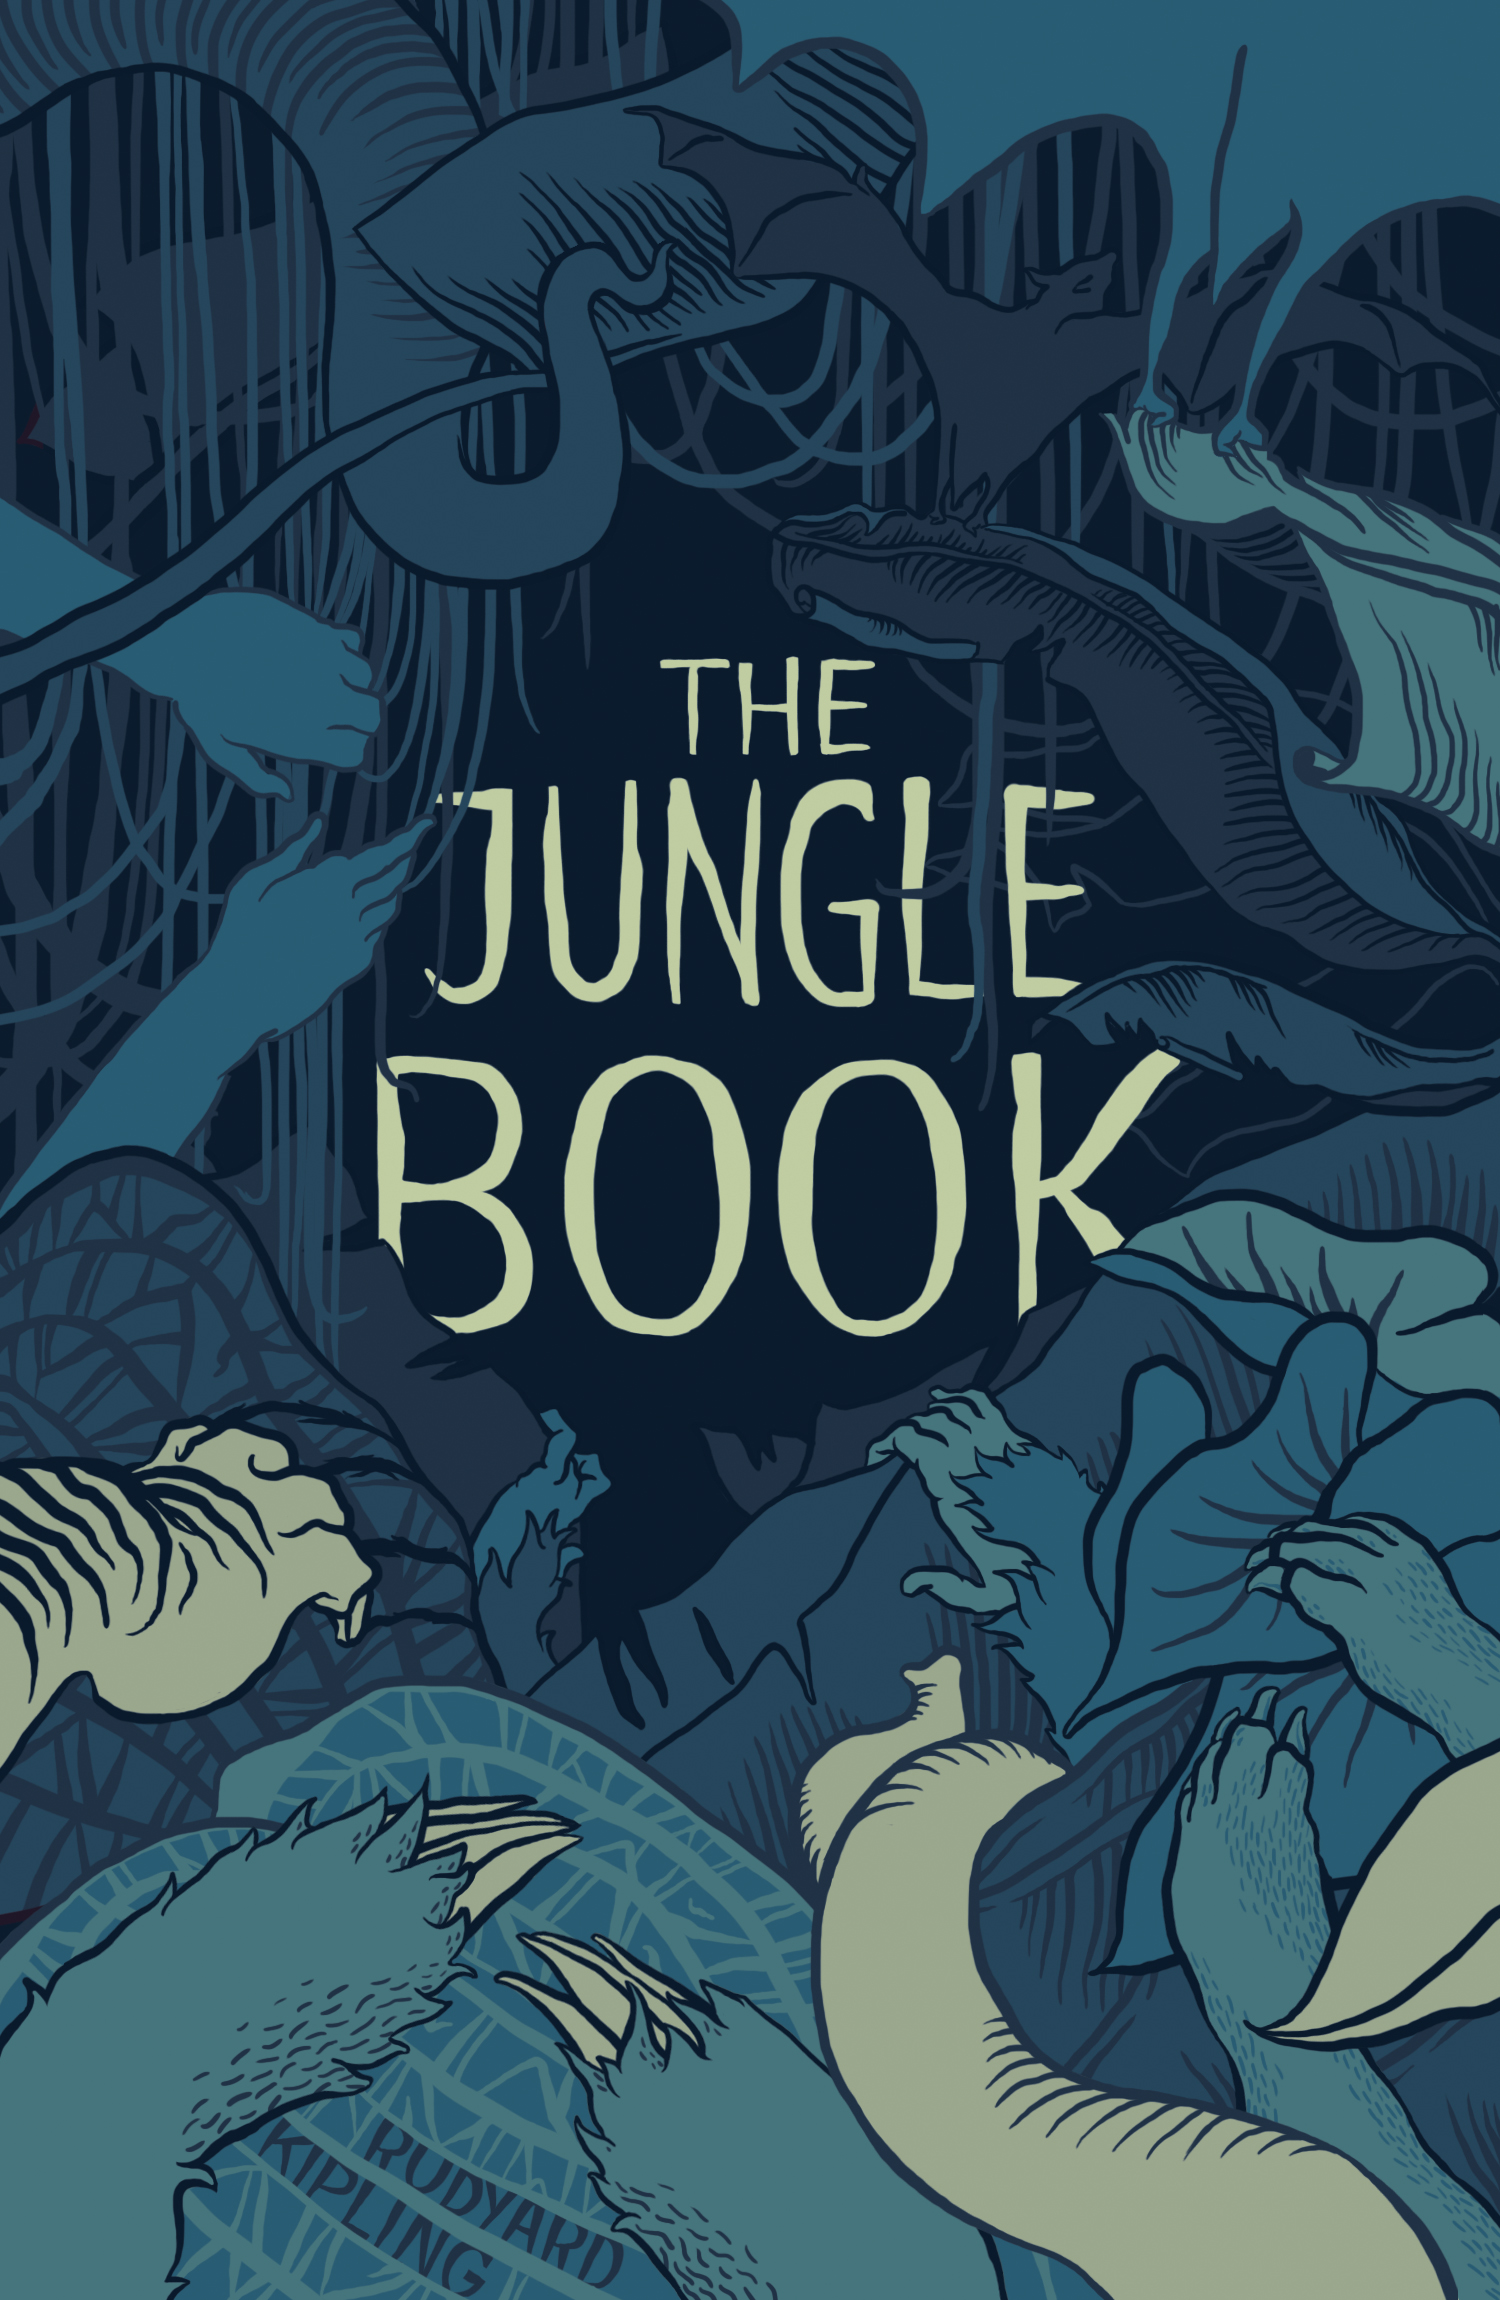 Book Cover Illustration : Cover illustration the jungle book by brett